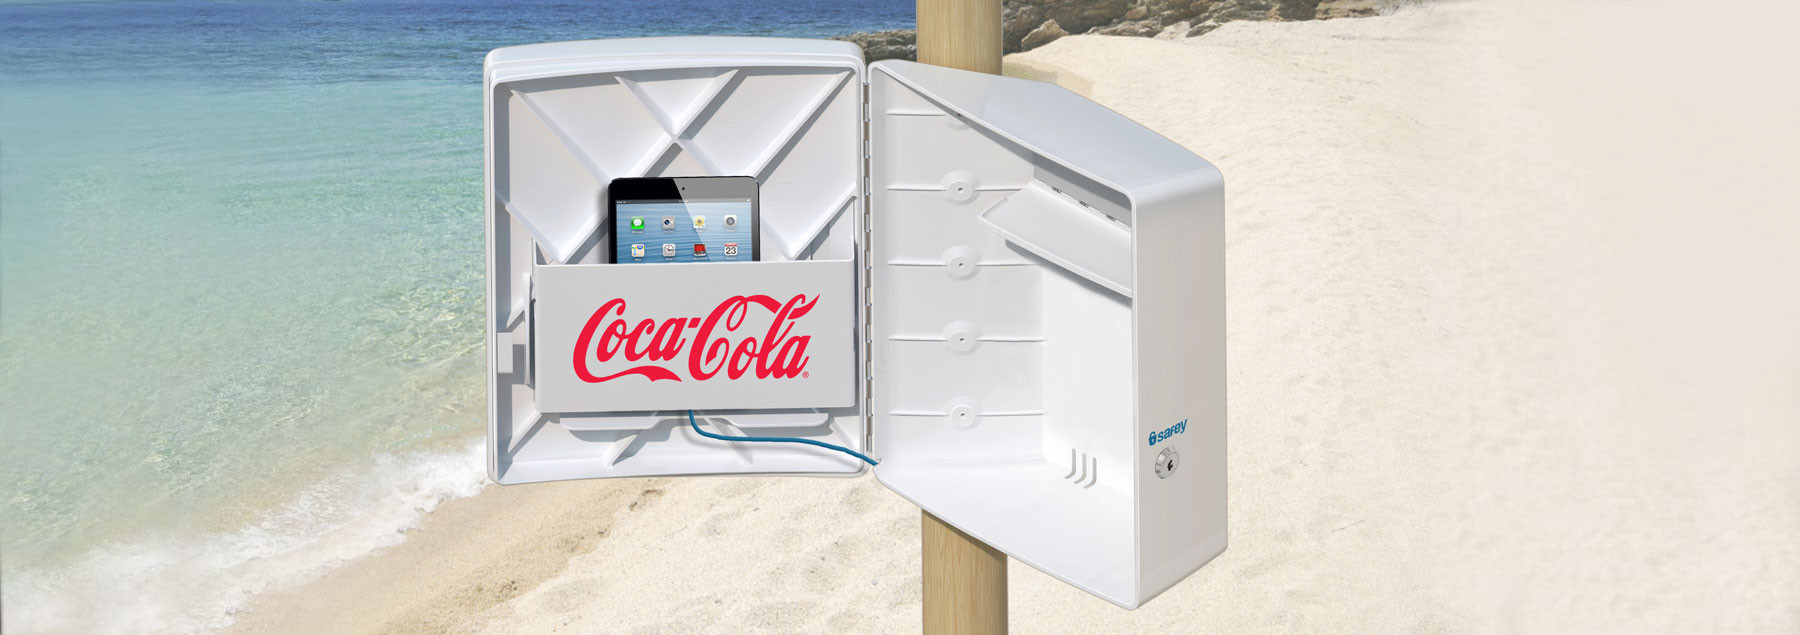 Safey Safety Box Secures Your Valuables At The Beach